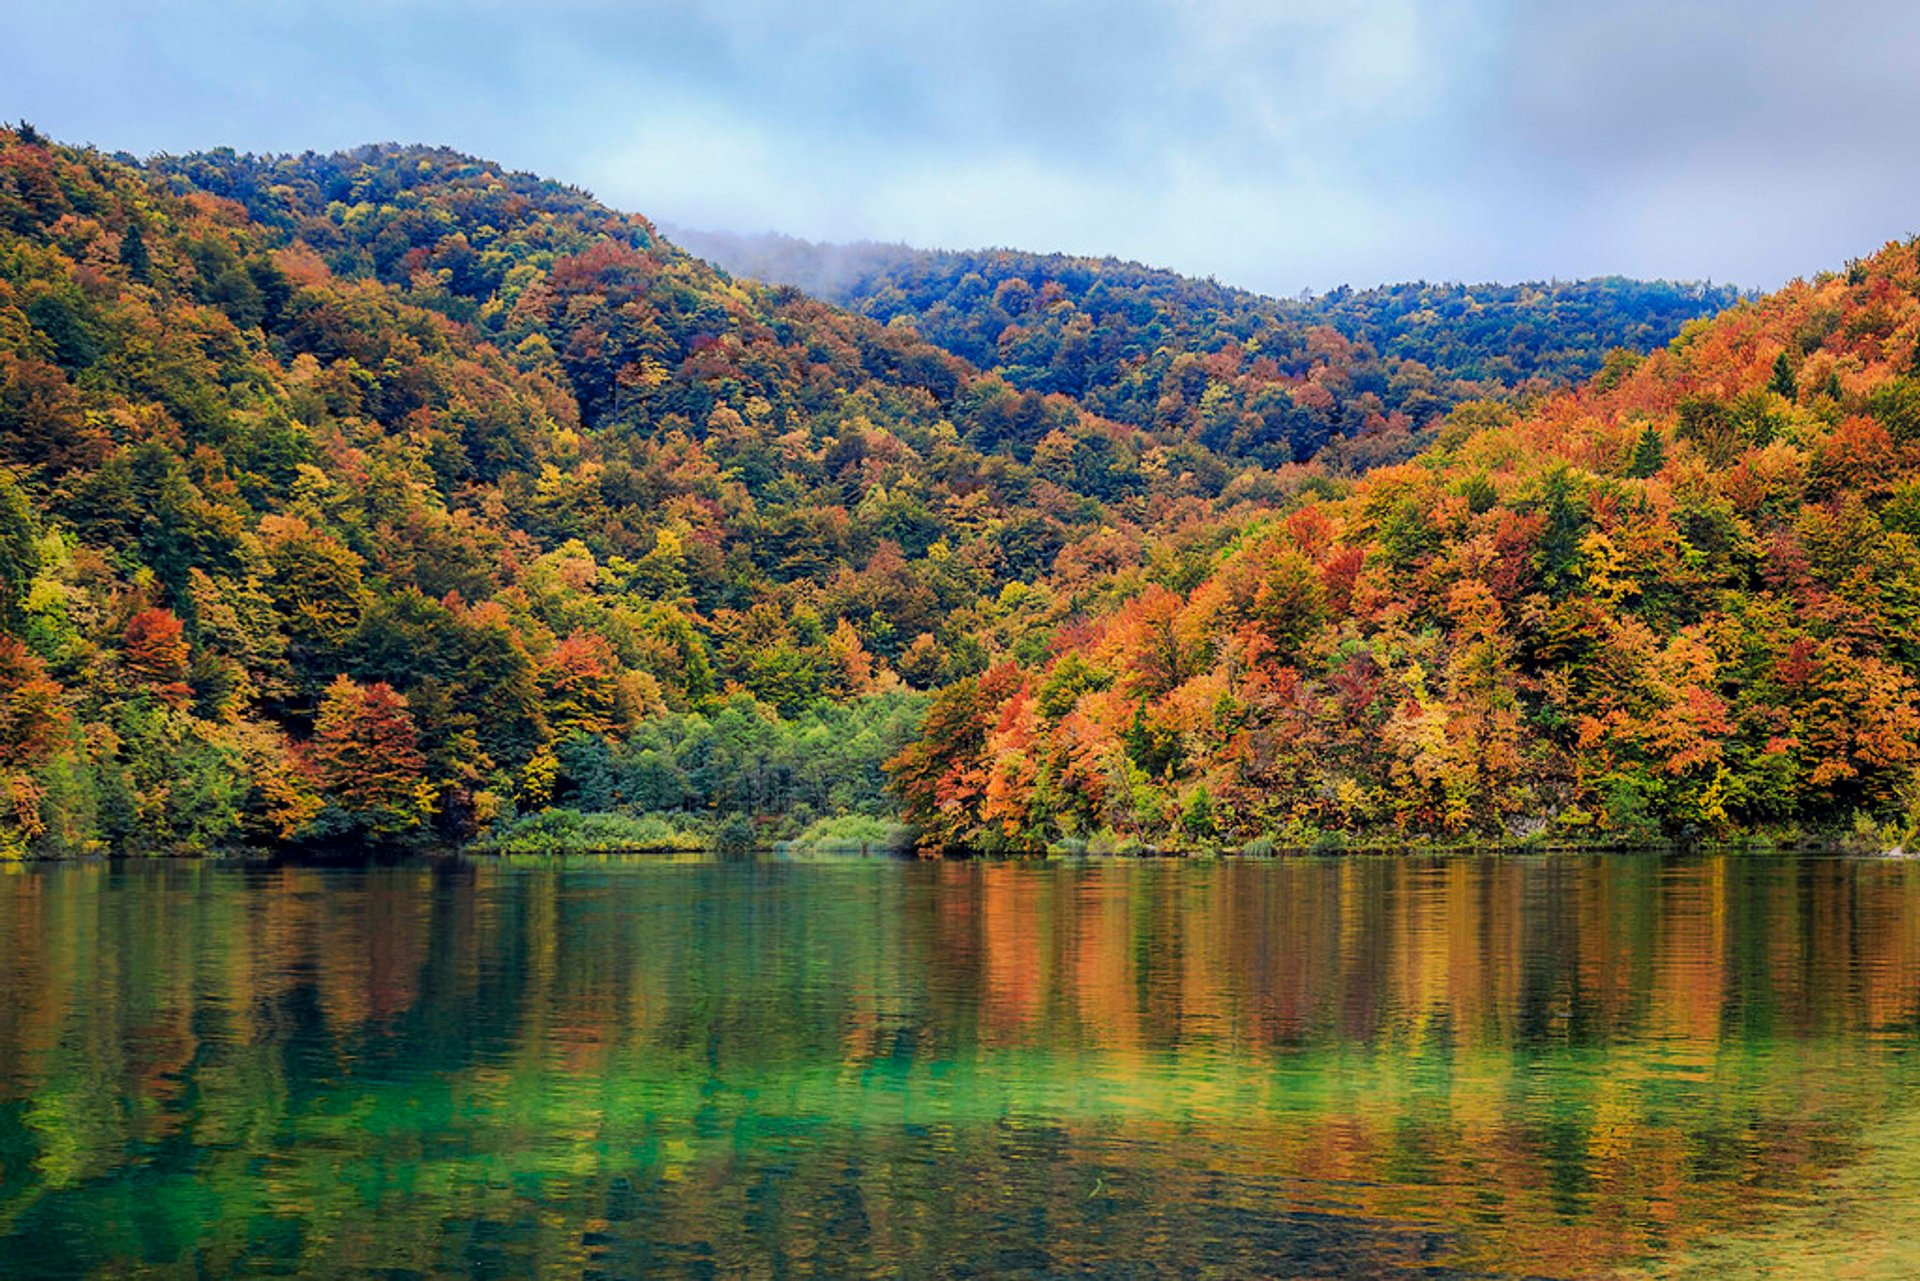 Autumnal Plitvice Lakes in Croatia 2020 - Best Time